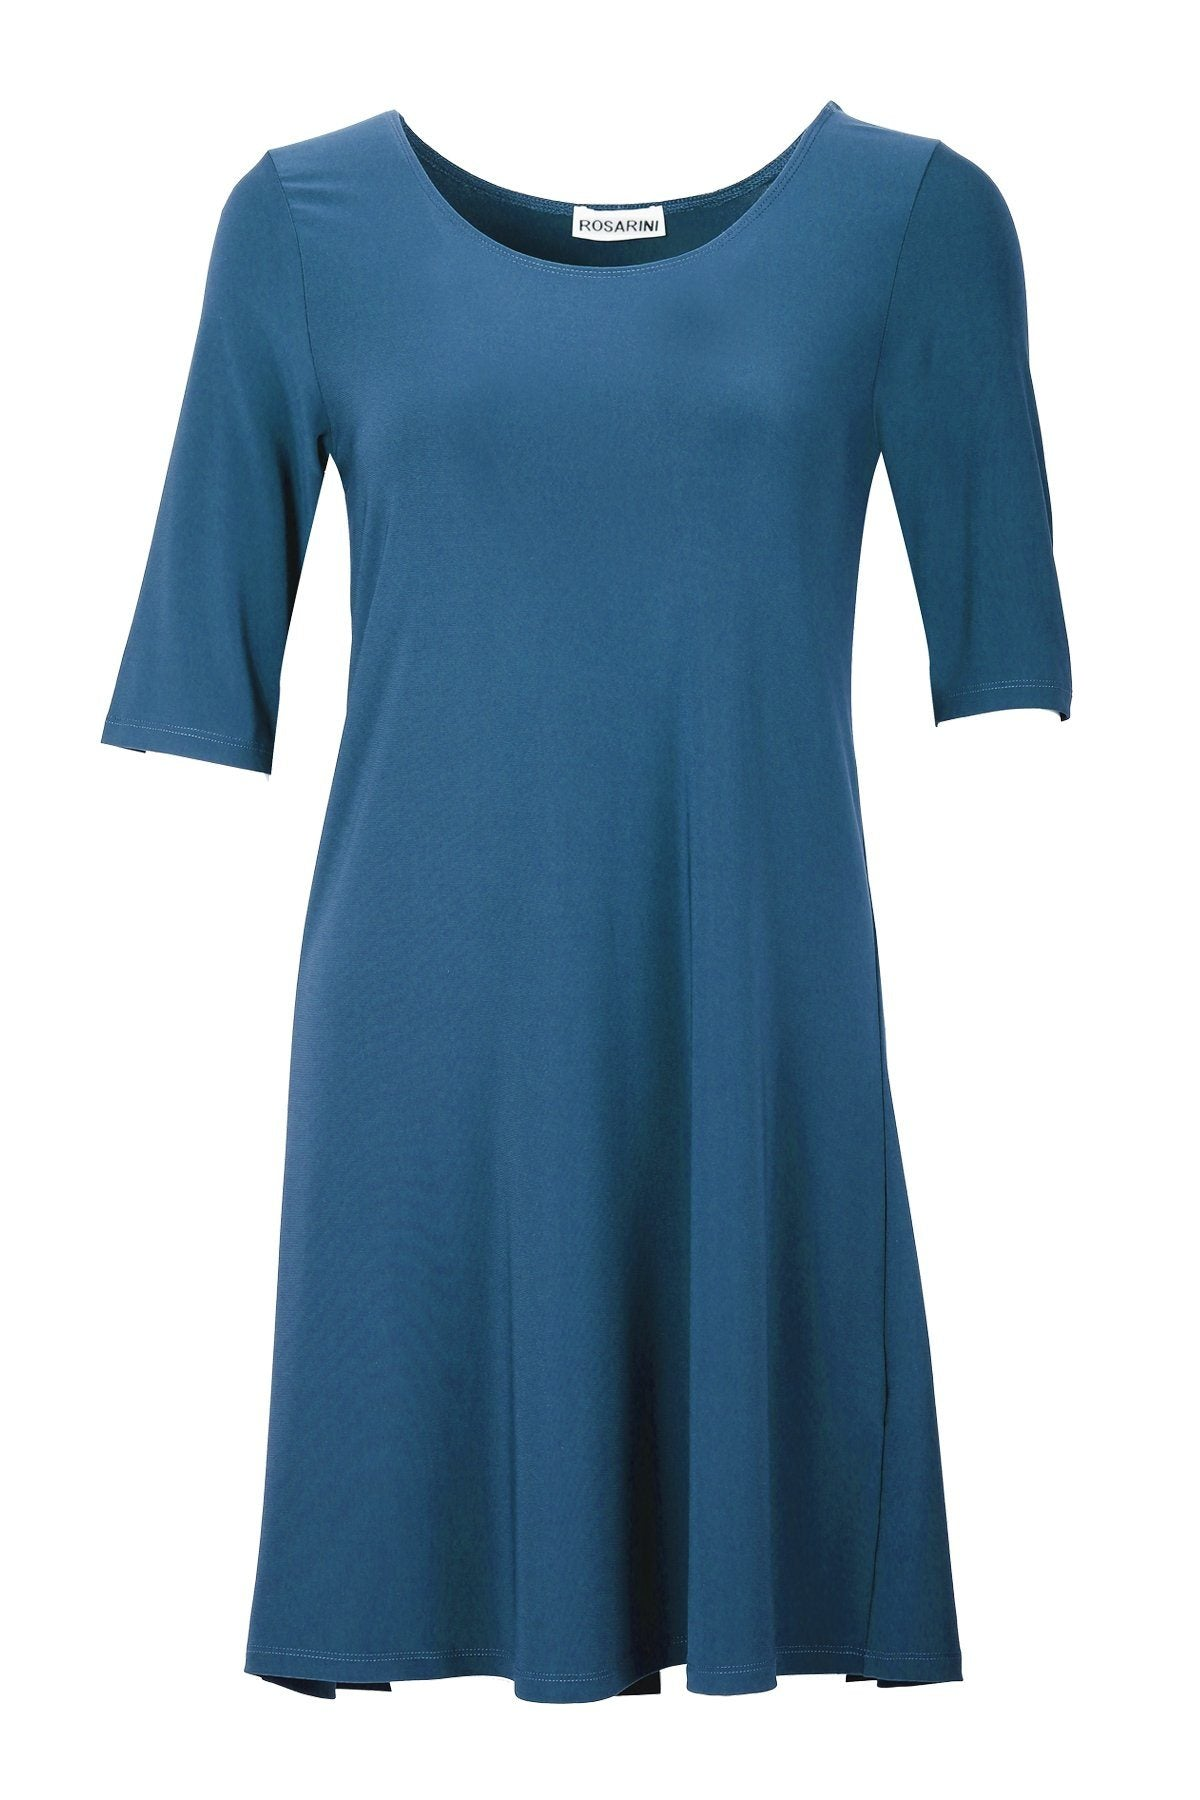 Women's Teal A Line Dress Top Rosarini